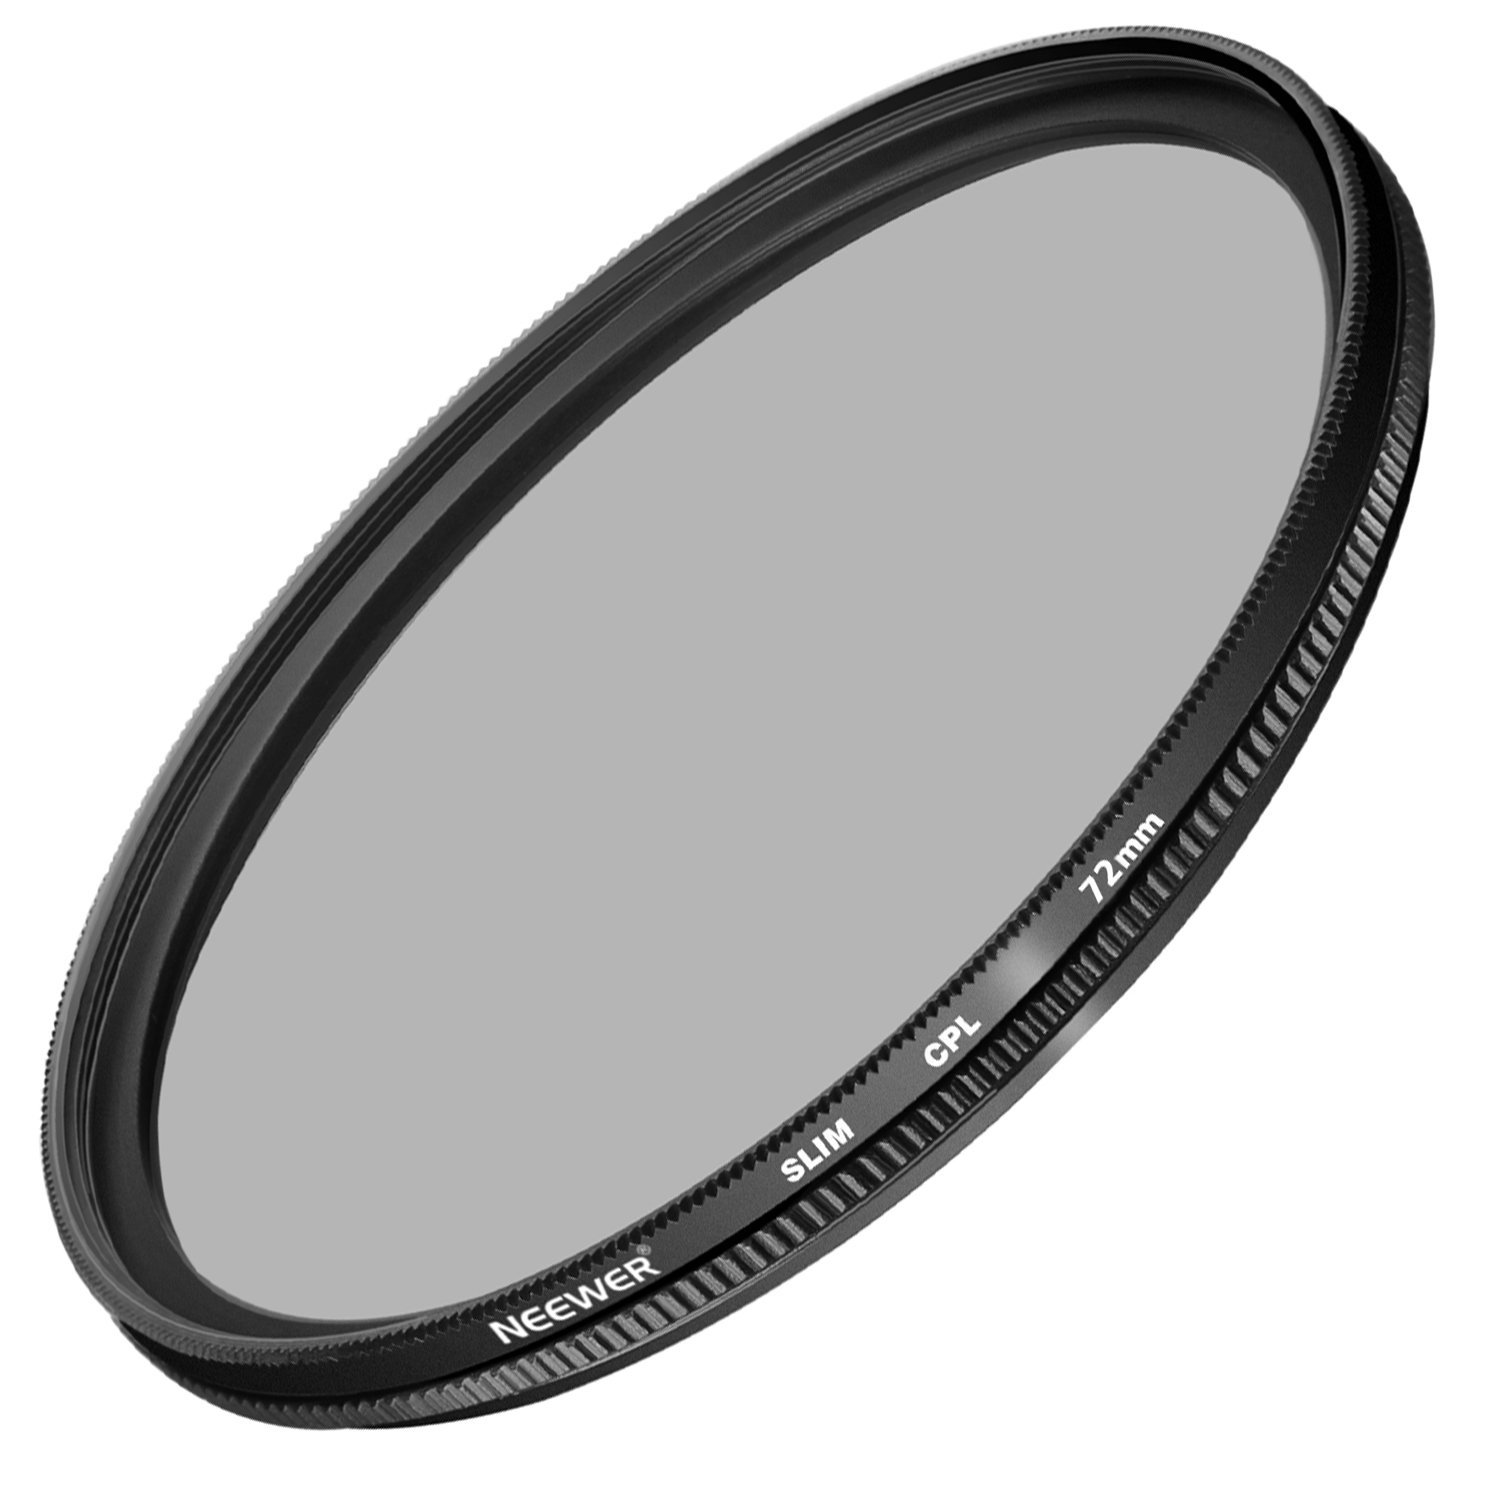 Neewer 72MM Ultra Slim CPL Filter Circular Polarizer Lens Filter for Camera Lens with 72MM Filter Thread Size, Made of Optical Glass and Aluminum Alloy Frame by Neewer